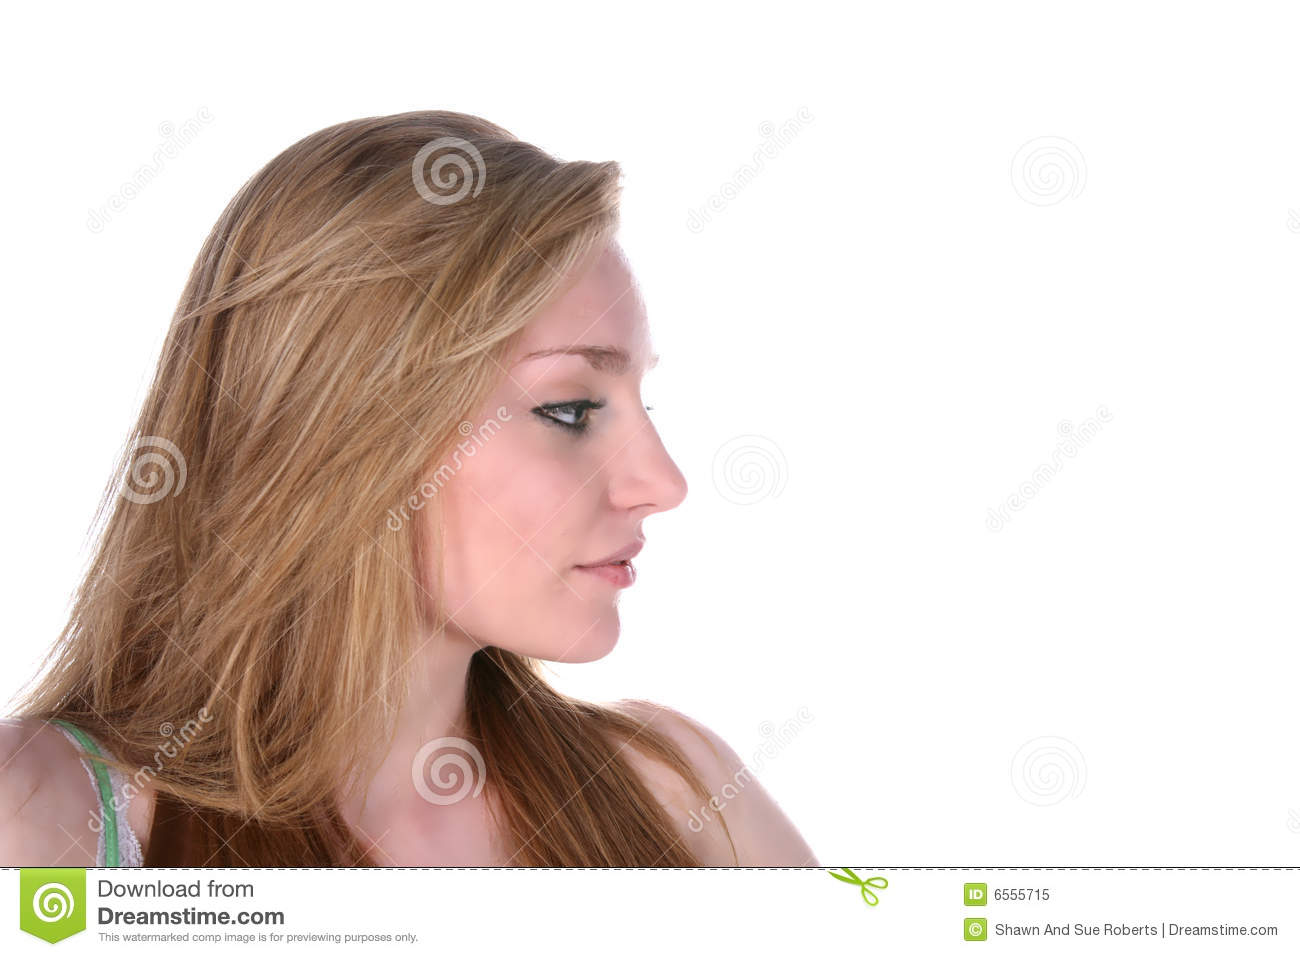 Pretty young woman's profile